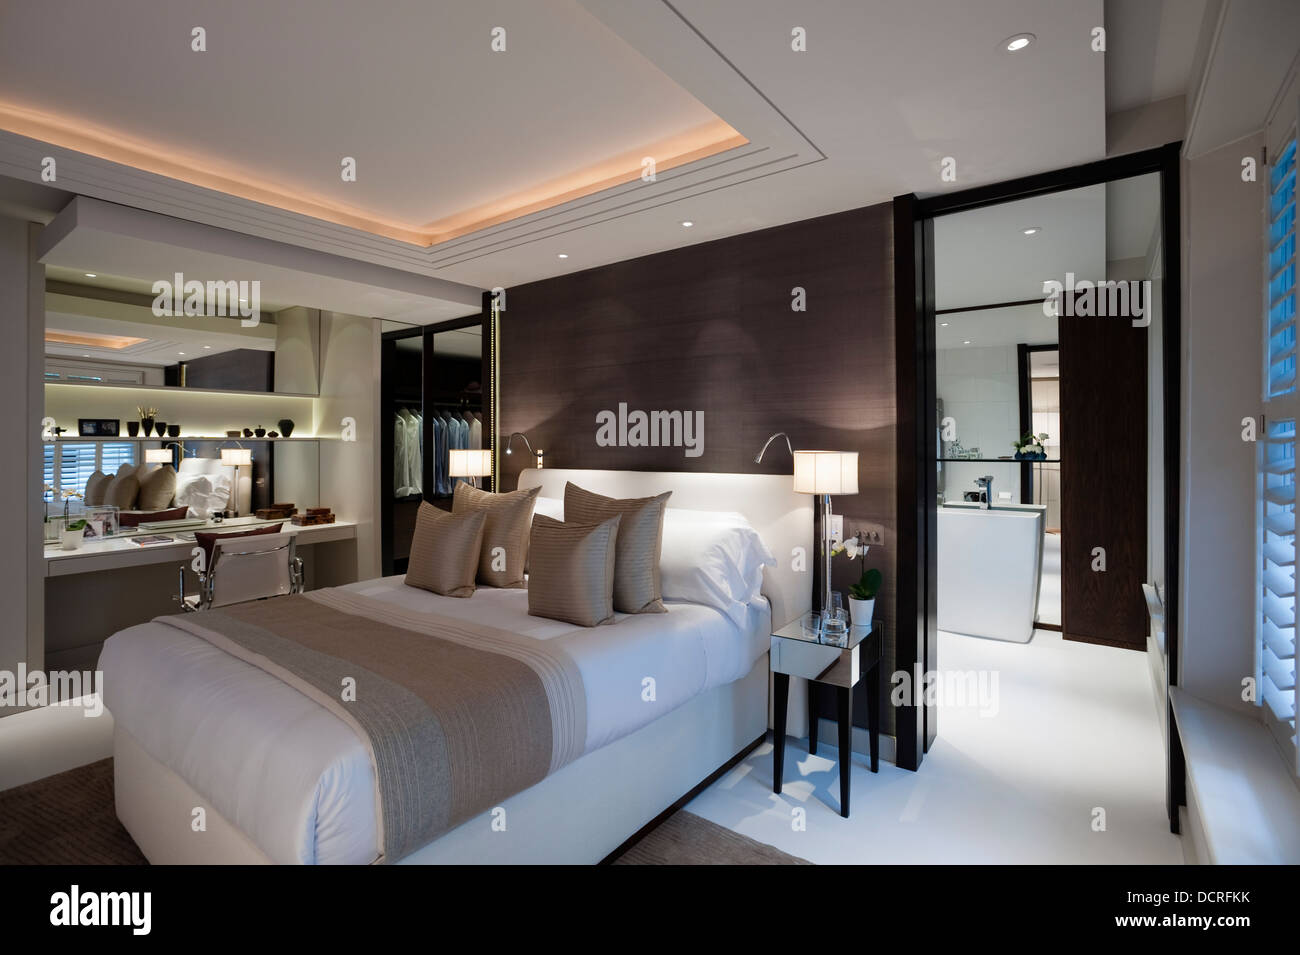 Bedroom of london city apartment with en suite bathroom for Bedroom designs with attached bathroom and dressing room